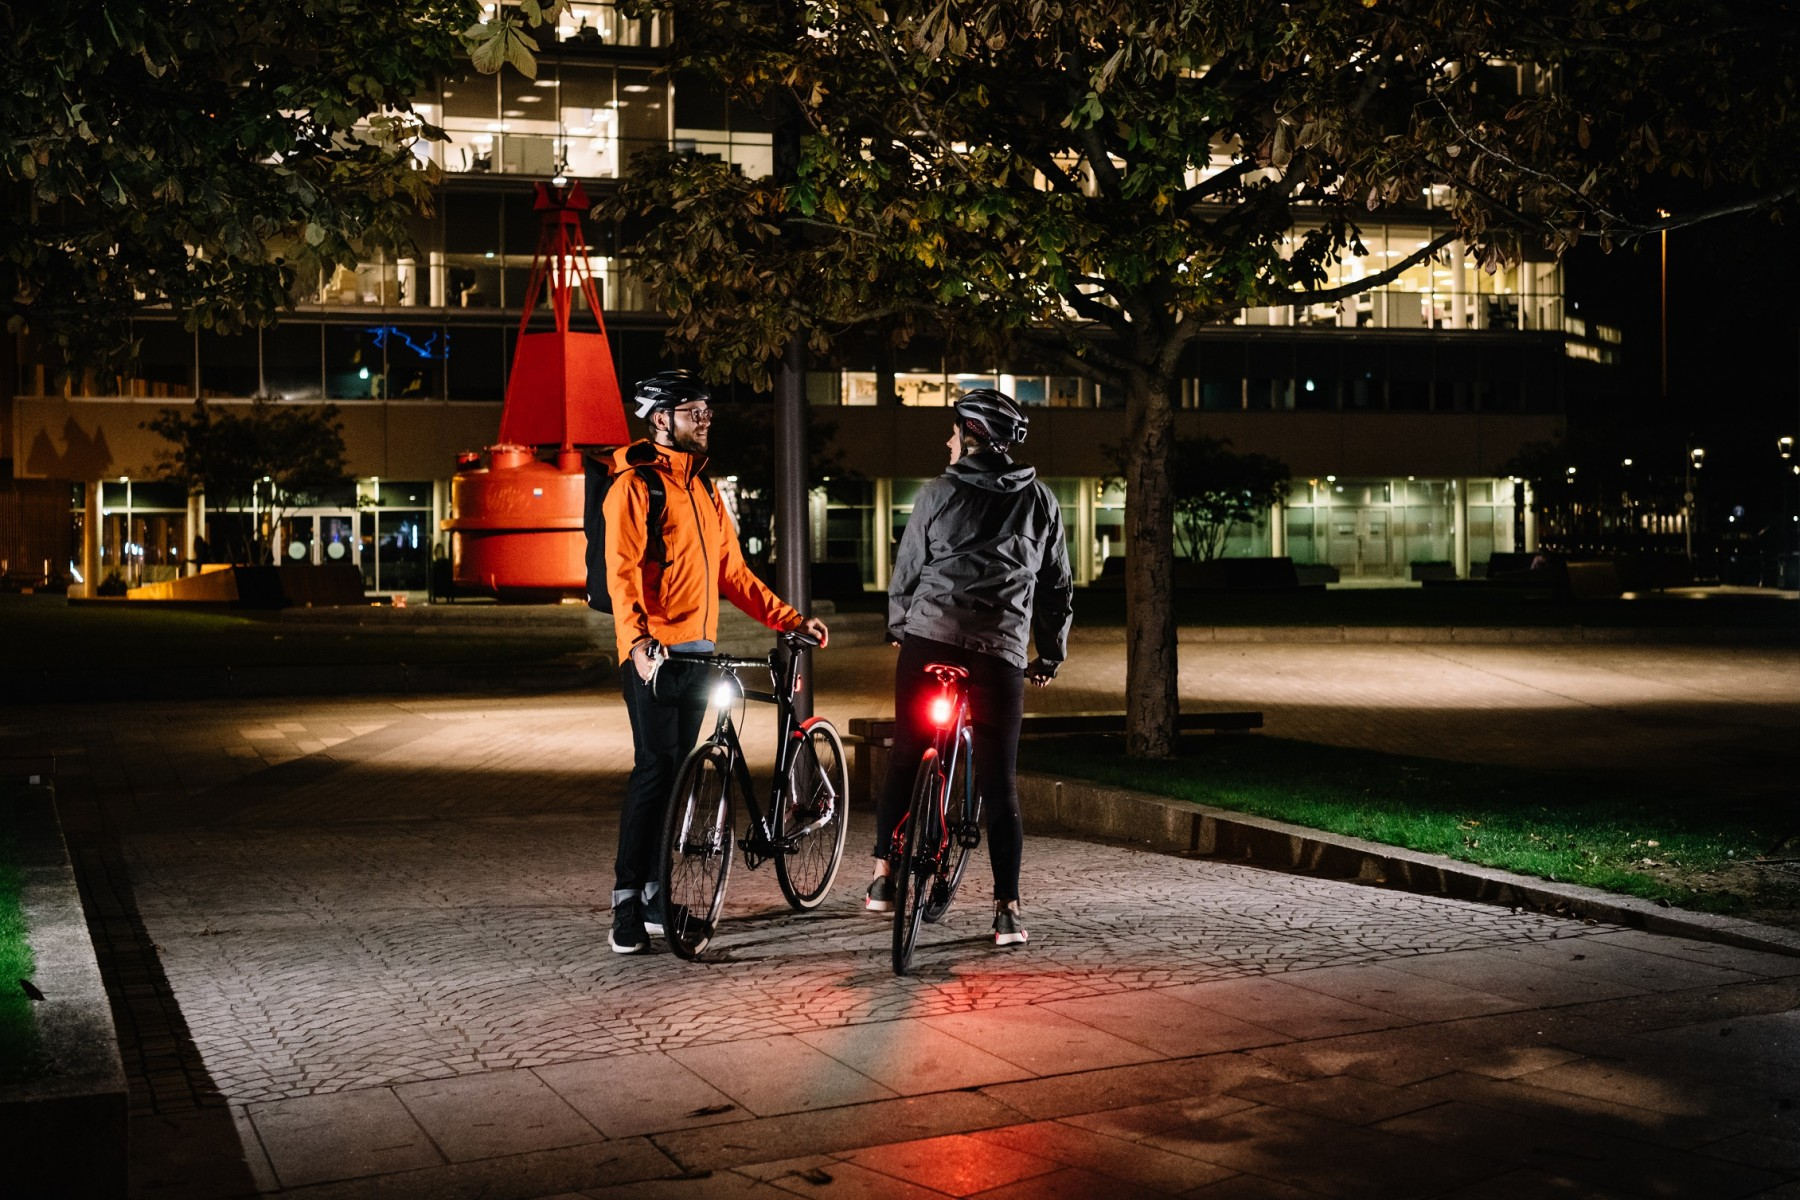 Two trials have been running in Manchester using smart IoT bike lights